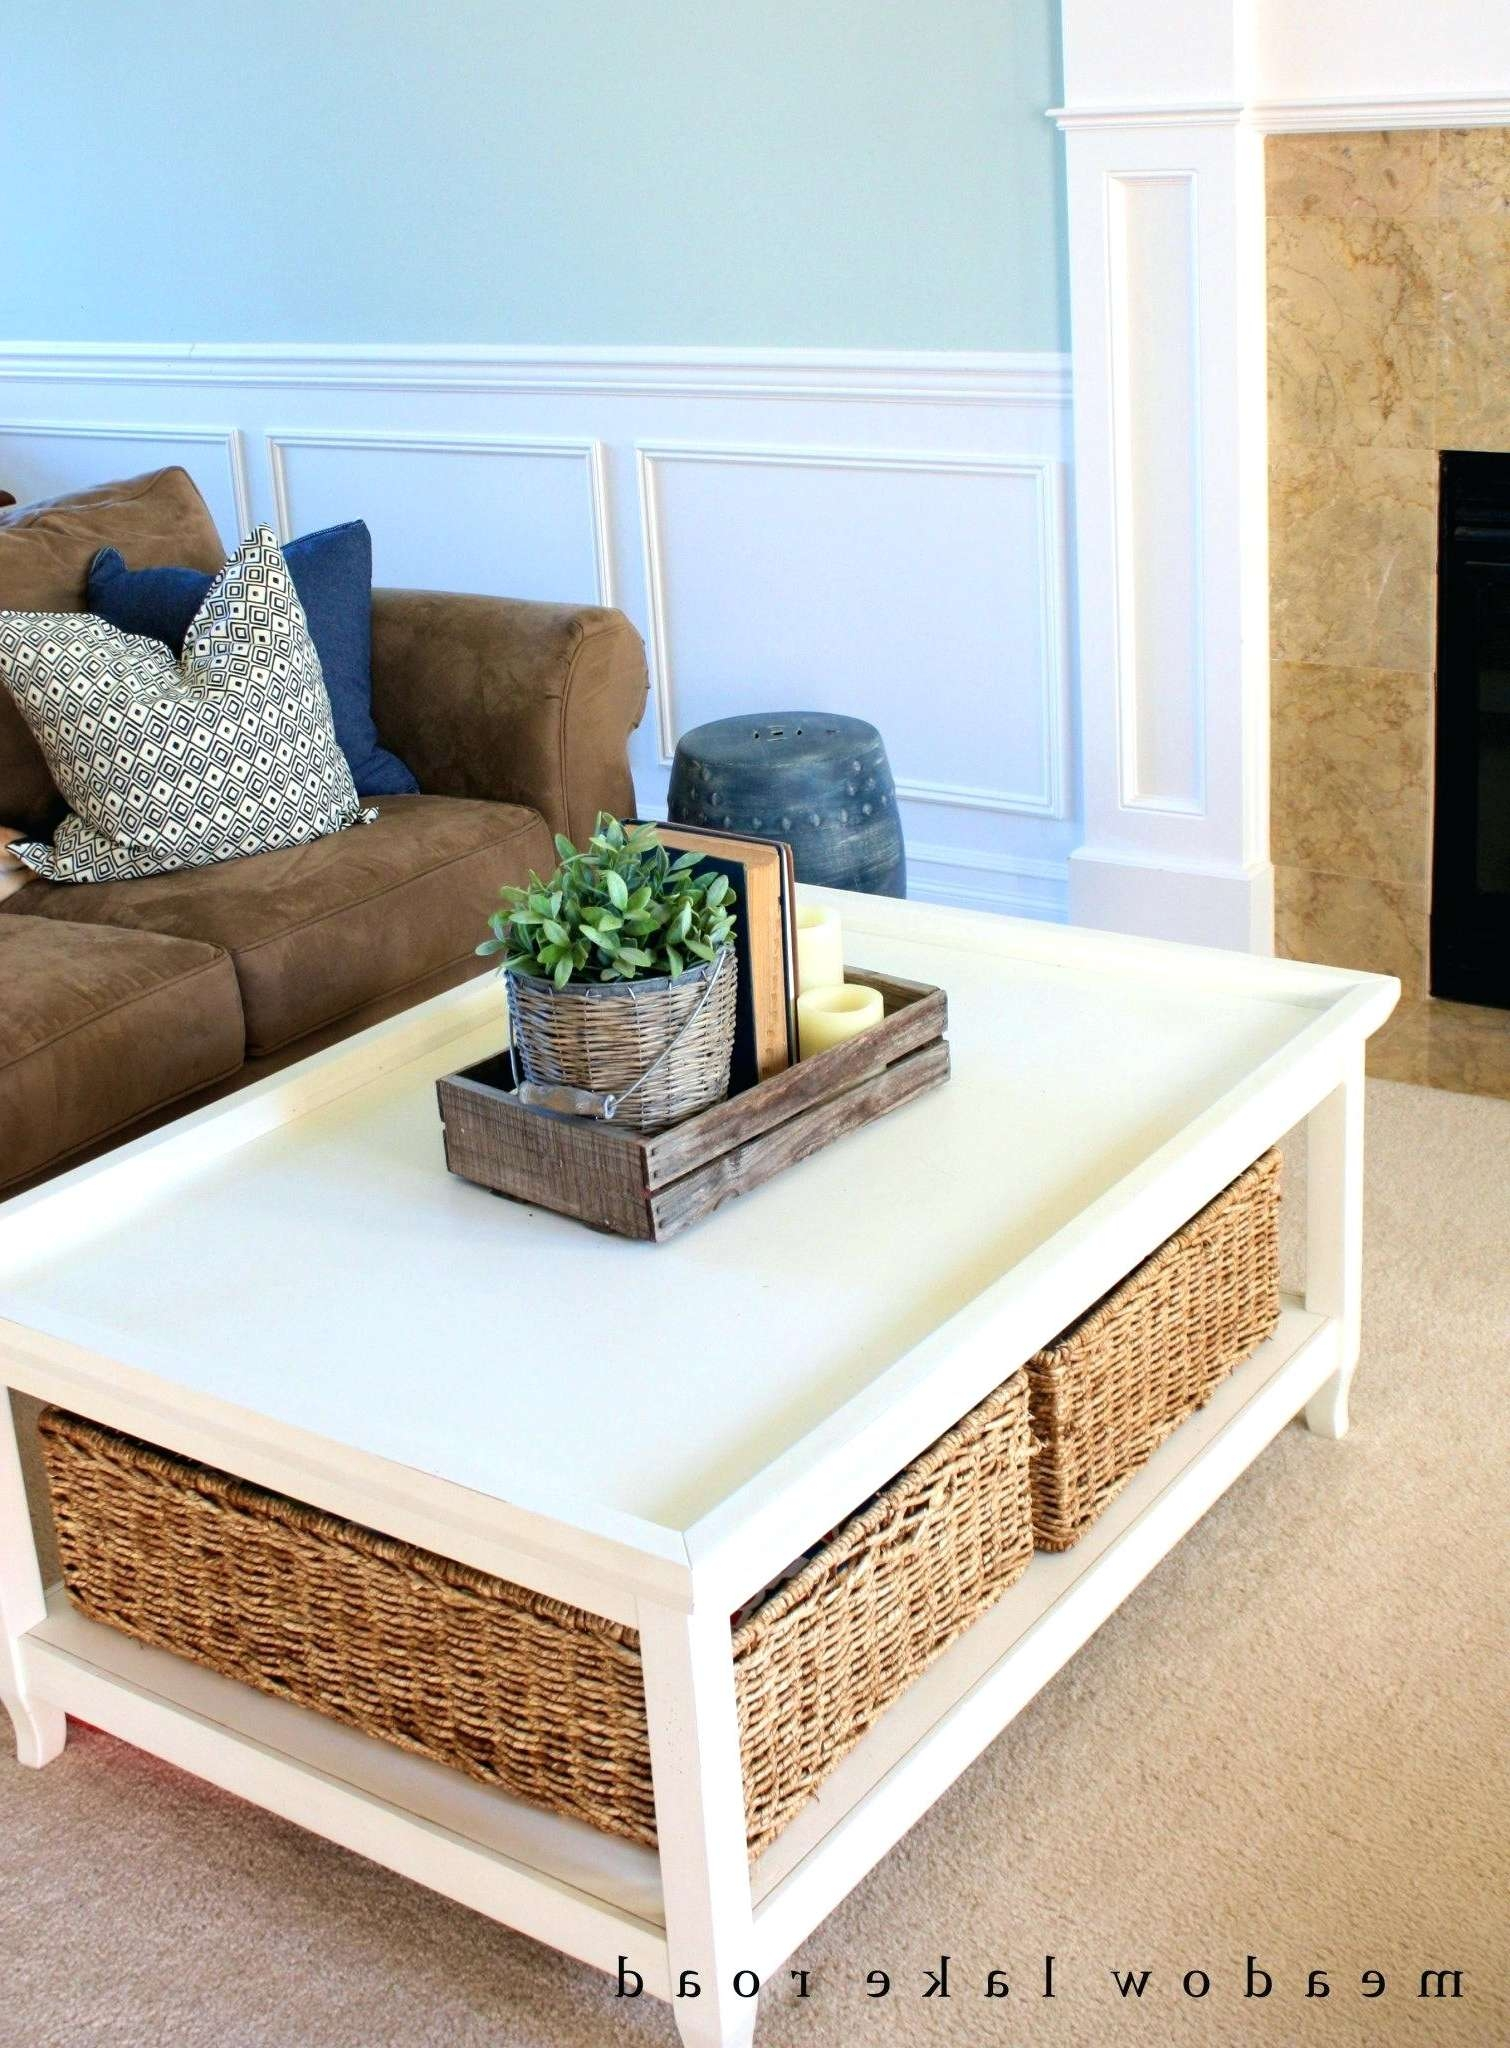 Square White Coffee Table Perfect For Interior Decor Storage Inside Newest Coffee Tables With Basket Storage Underneath (View 4 of 20)